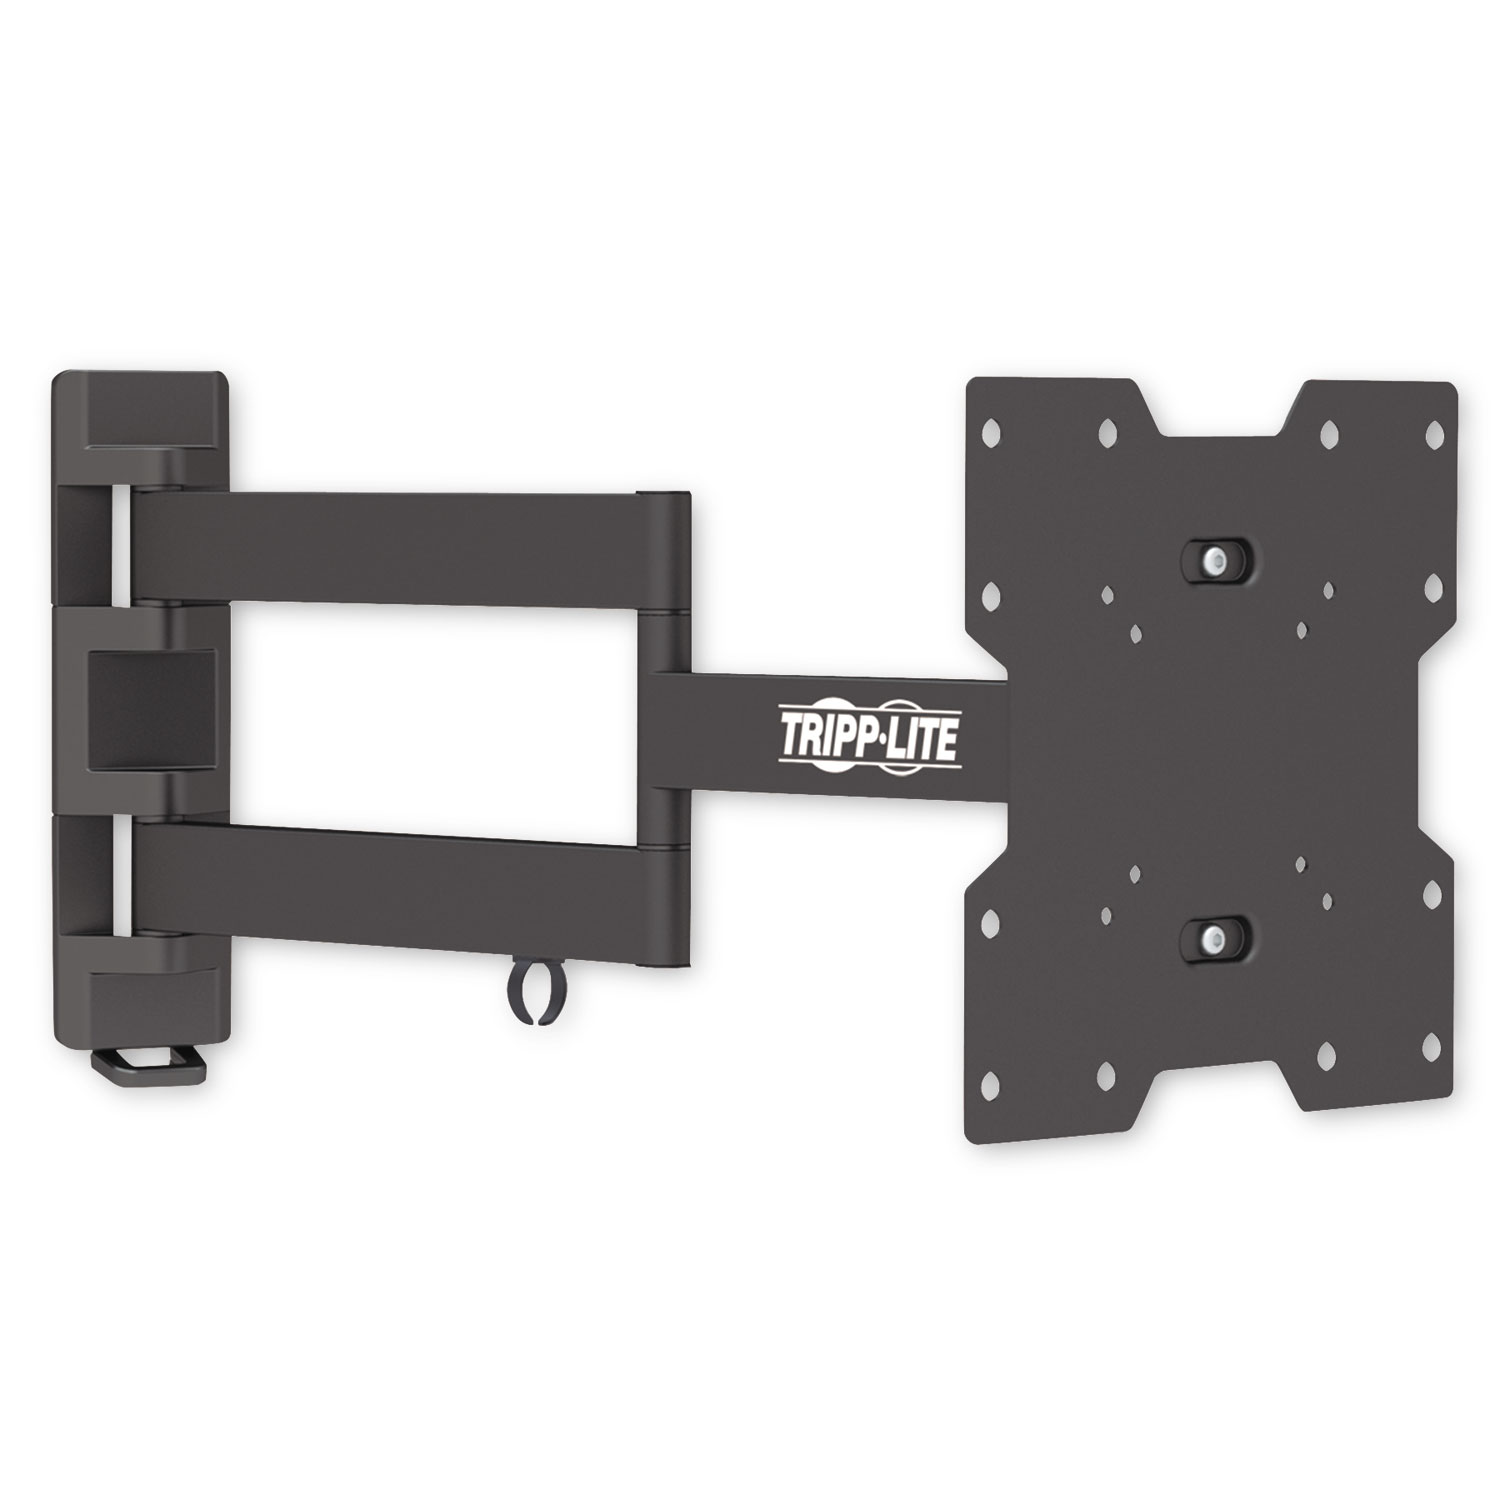 Swivel/Tilt Wall Mount With Arms, For 17″ To 42″ TVs/Monitors, Up To 77 Lbs